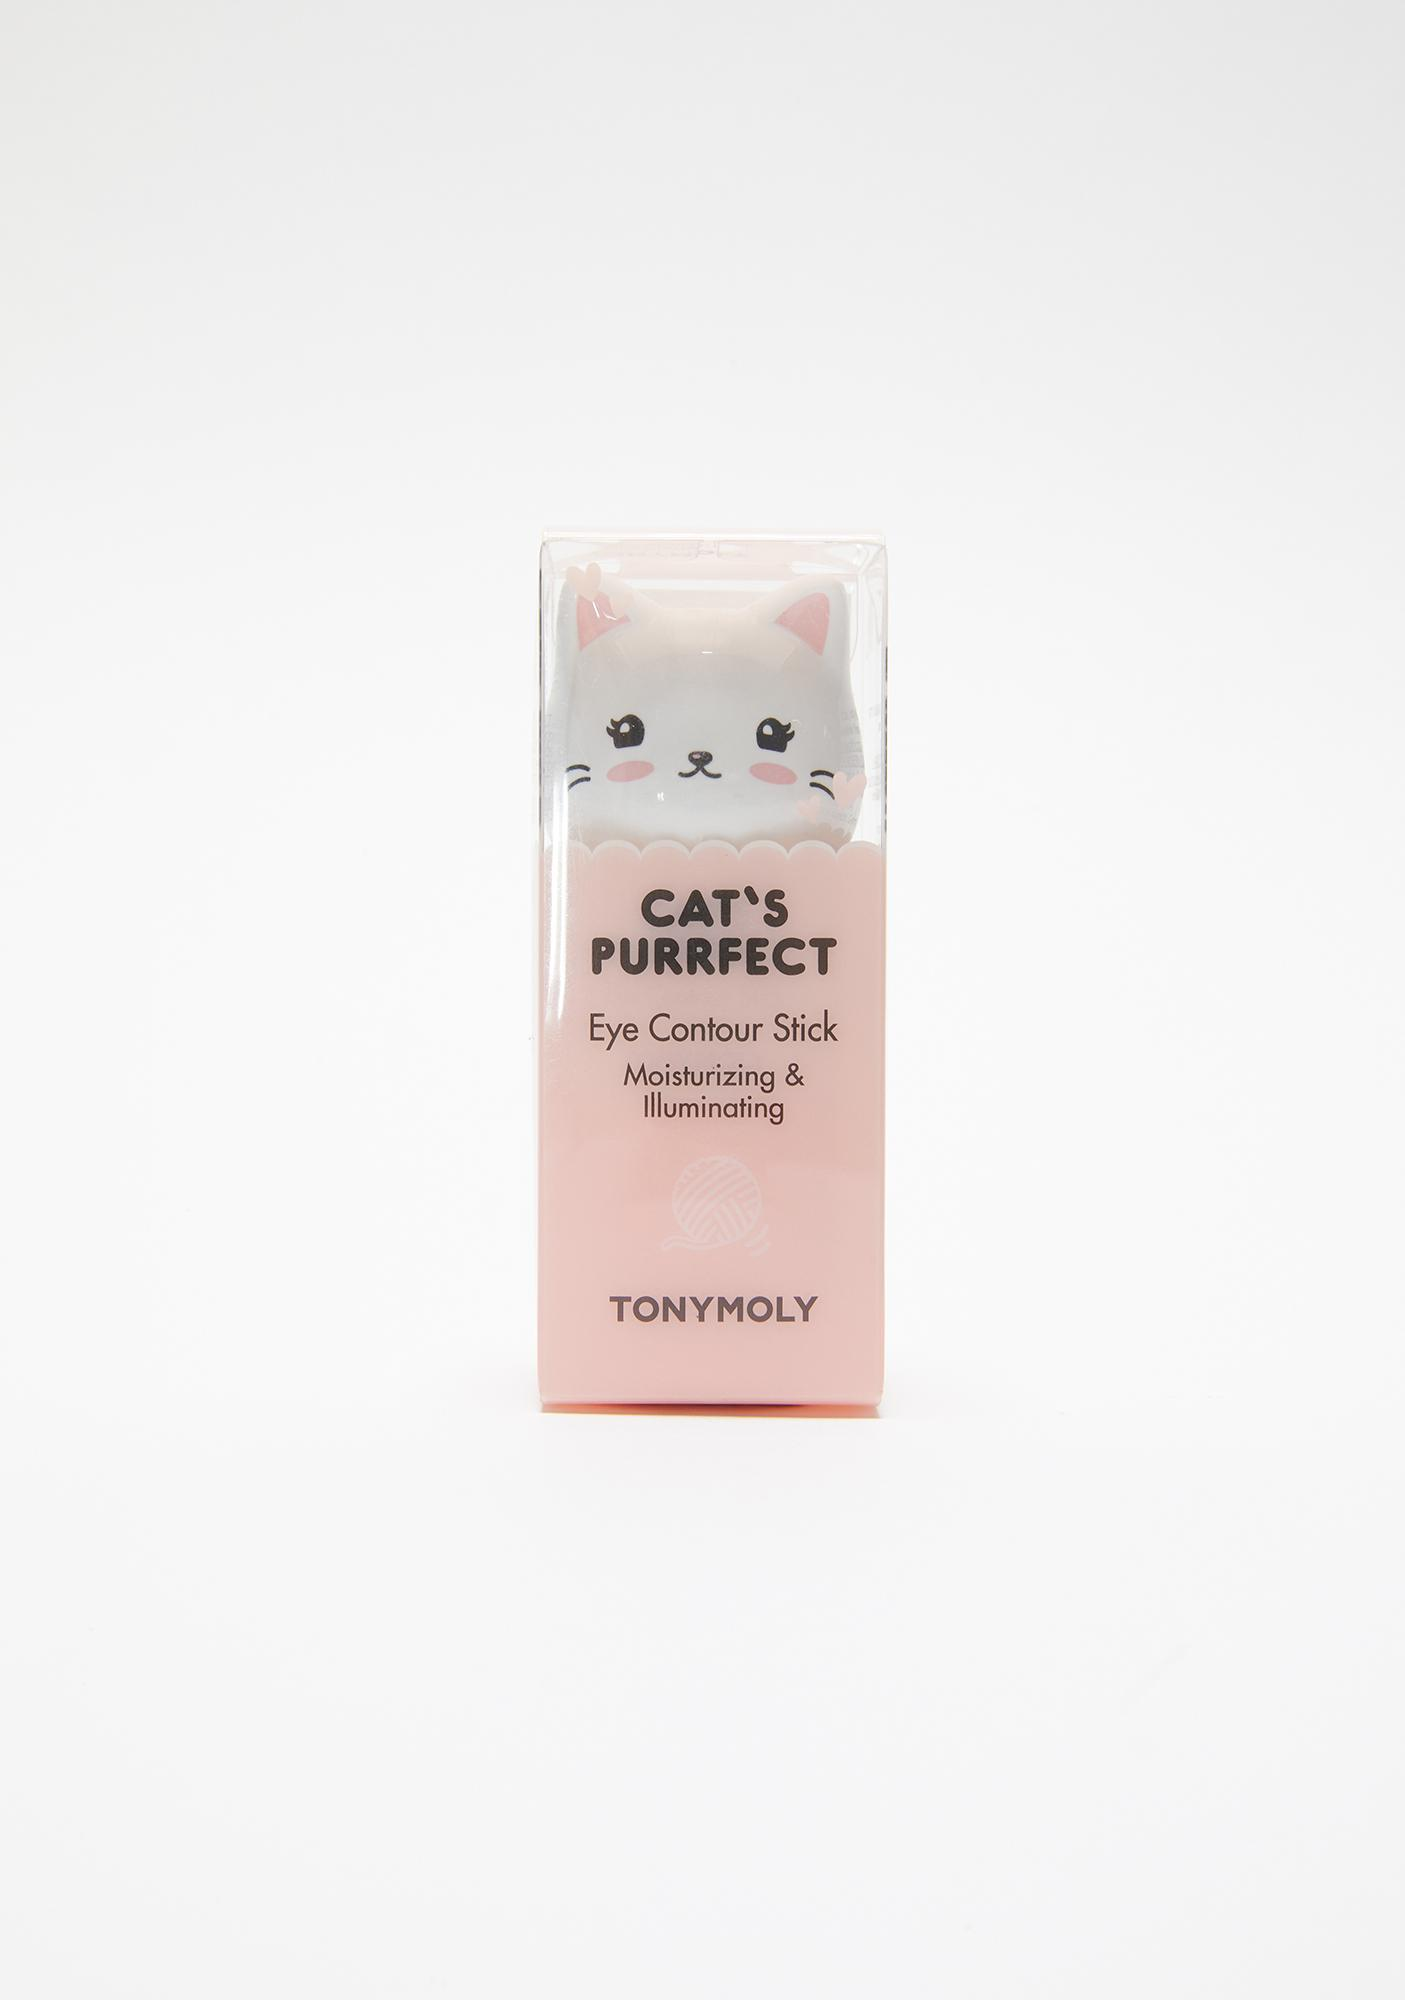 TONYMOLY Cat's Purrfect Eye Contour Stick